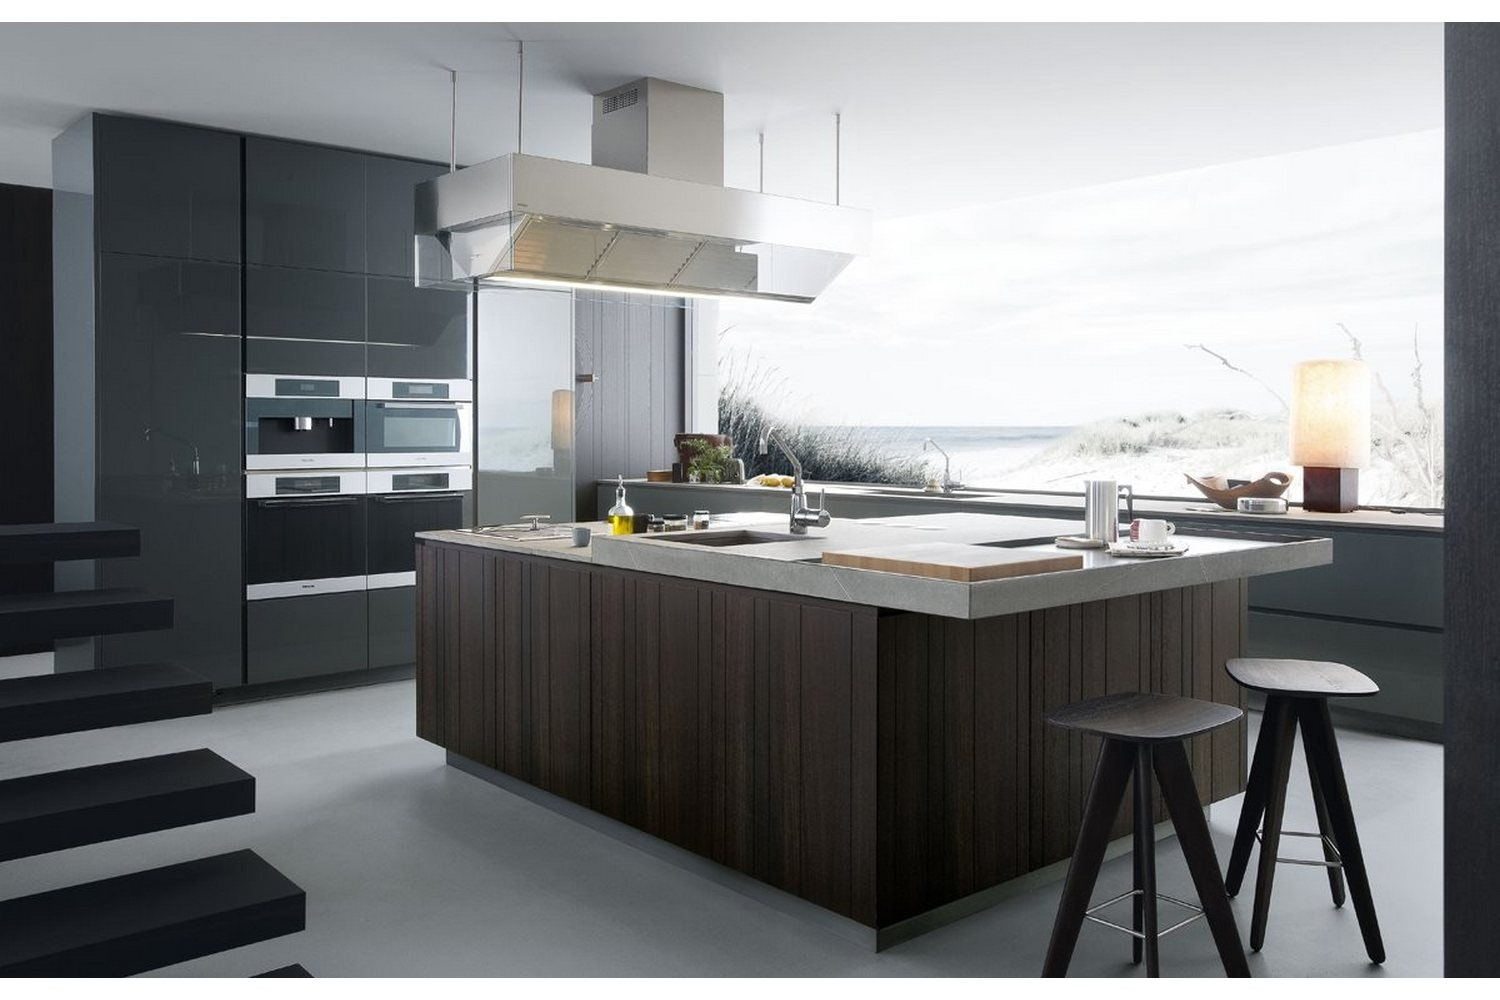 Artex Kitchen by R&D Varenna for Poliform